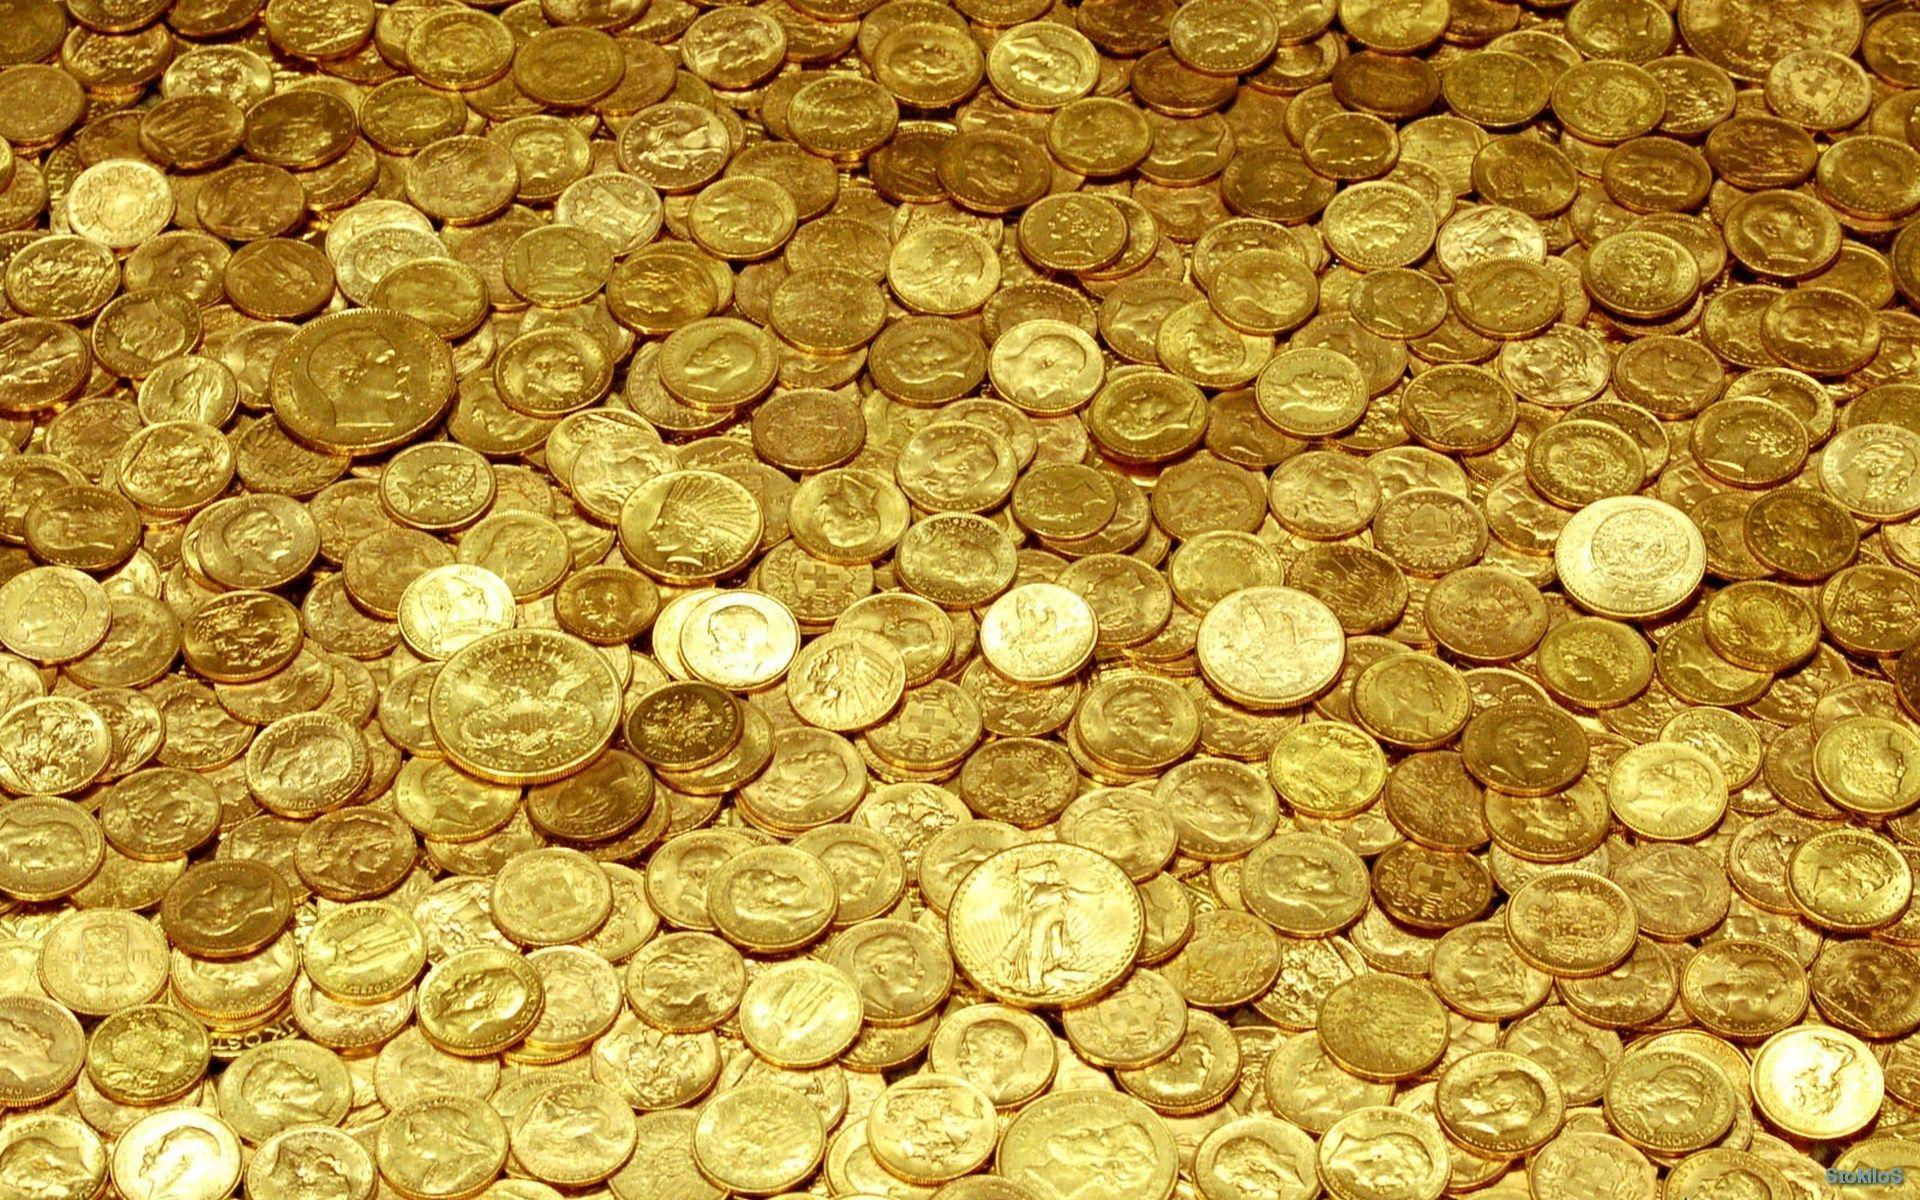 Gold Coins Wallpapers   Top Gold Coins Backgrounds 1920x1200